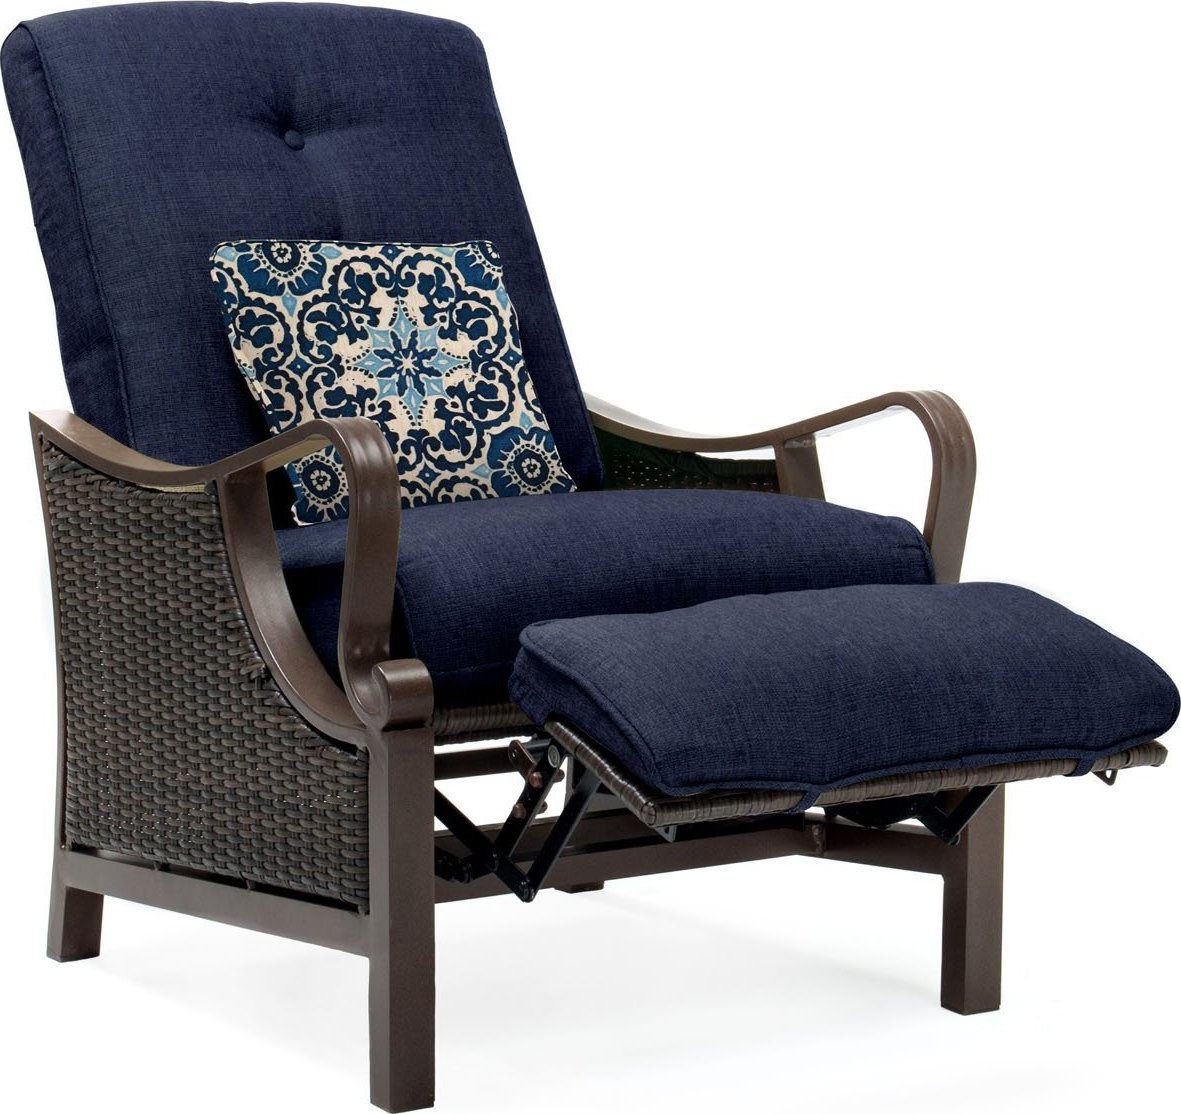 Outdoor Reclining Chair Hanover Ventura Luxury Resin Wicker Outdoor Recliner Chair